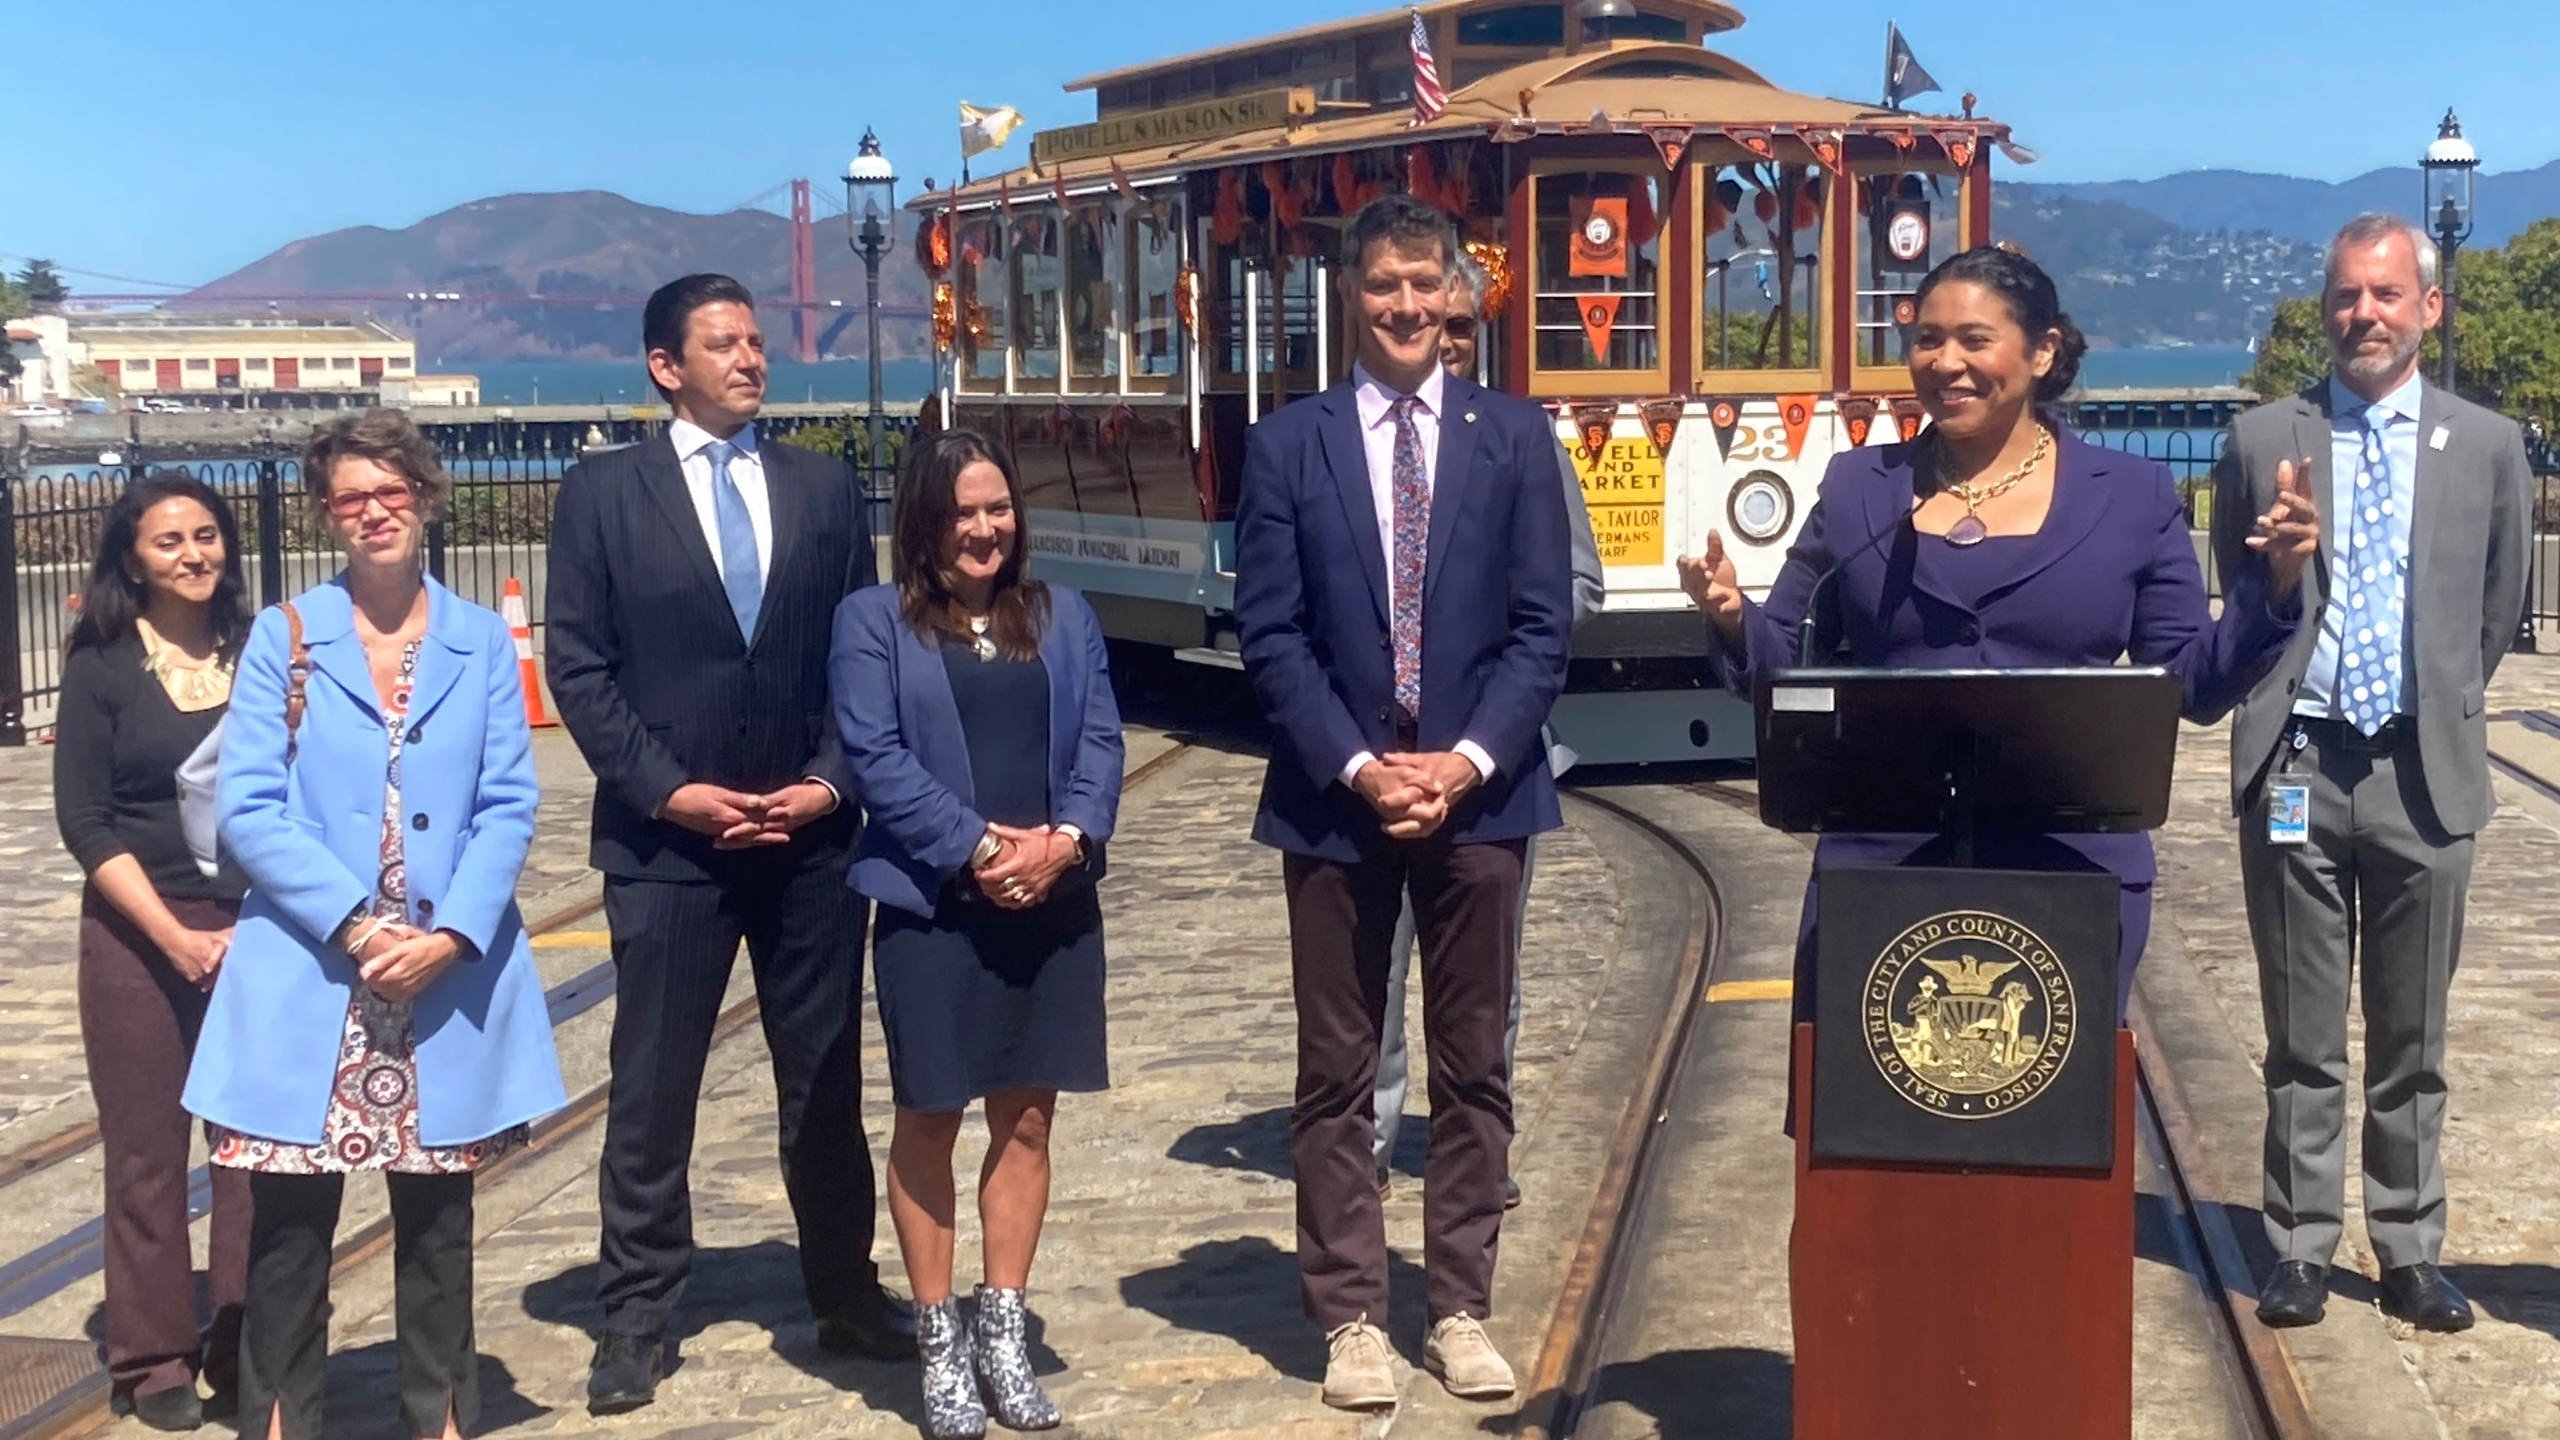 Mayor London Breed talks about the return of cable cars during a news conference at the Hyde Street cable car turnaround in San Francisco on June 15, 2021. (Olga Rodriguez/Associated Press)